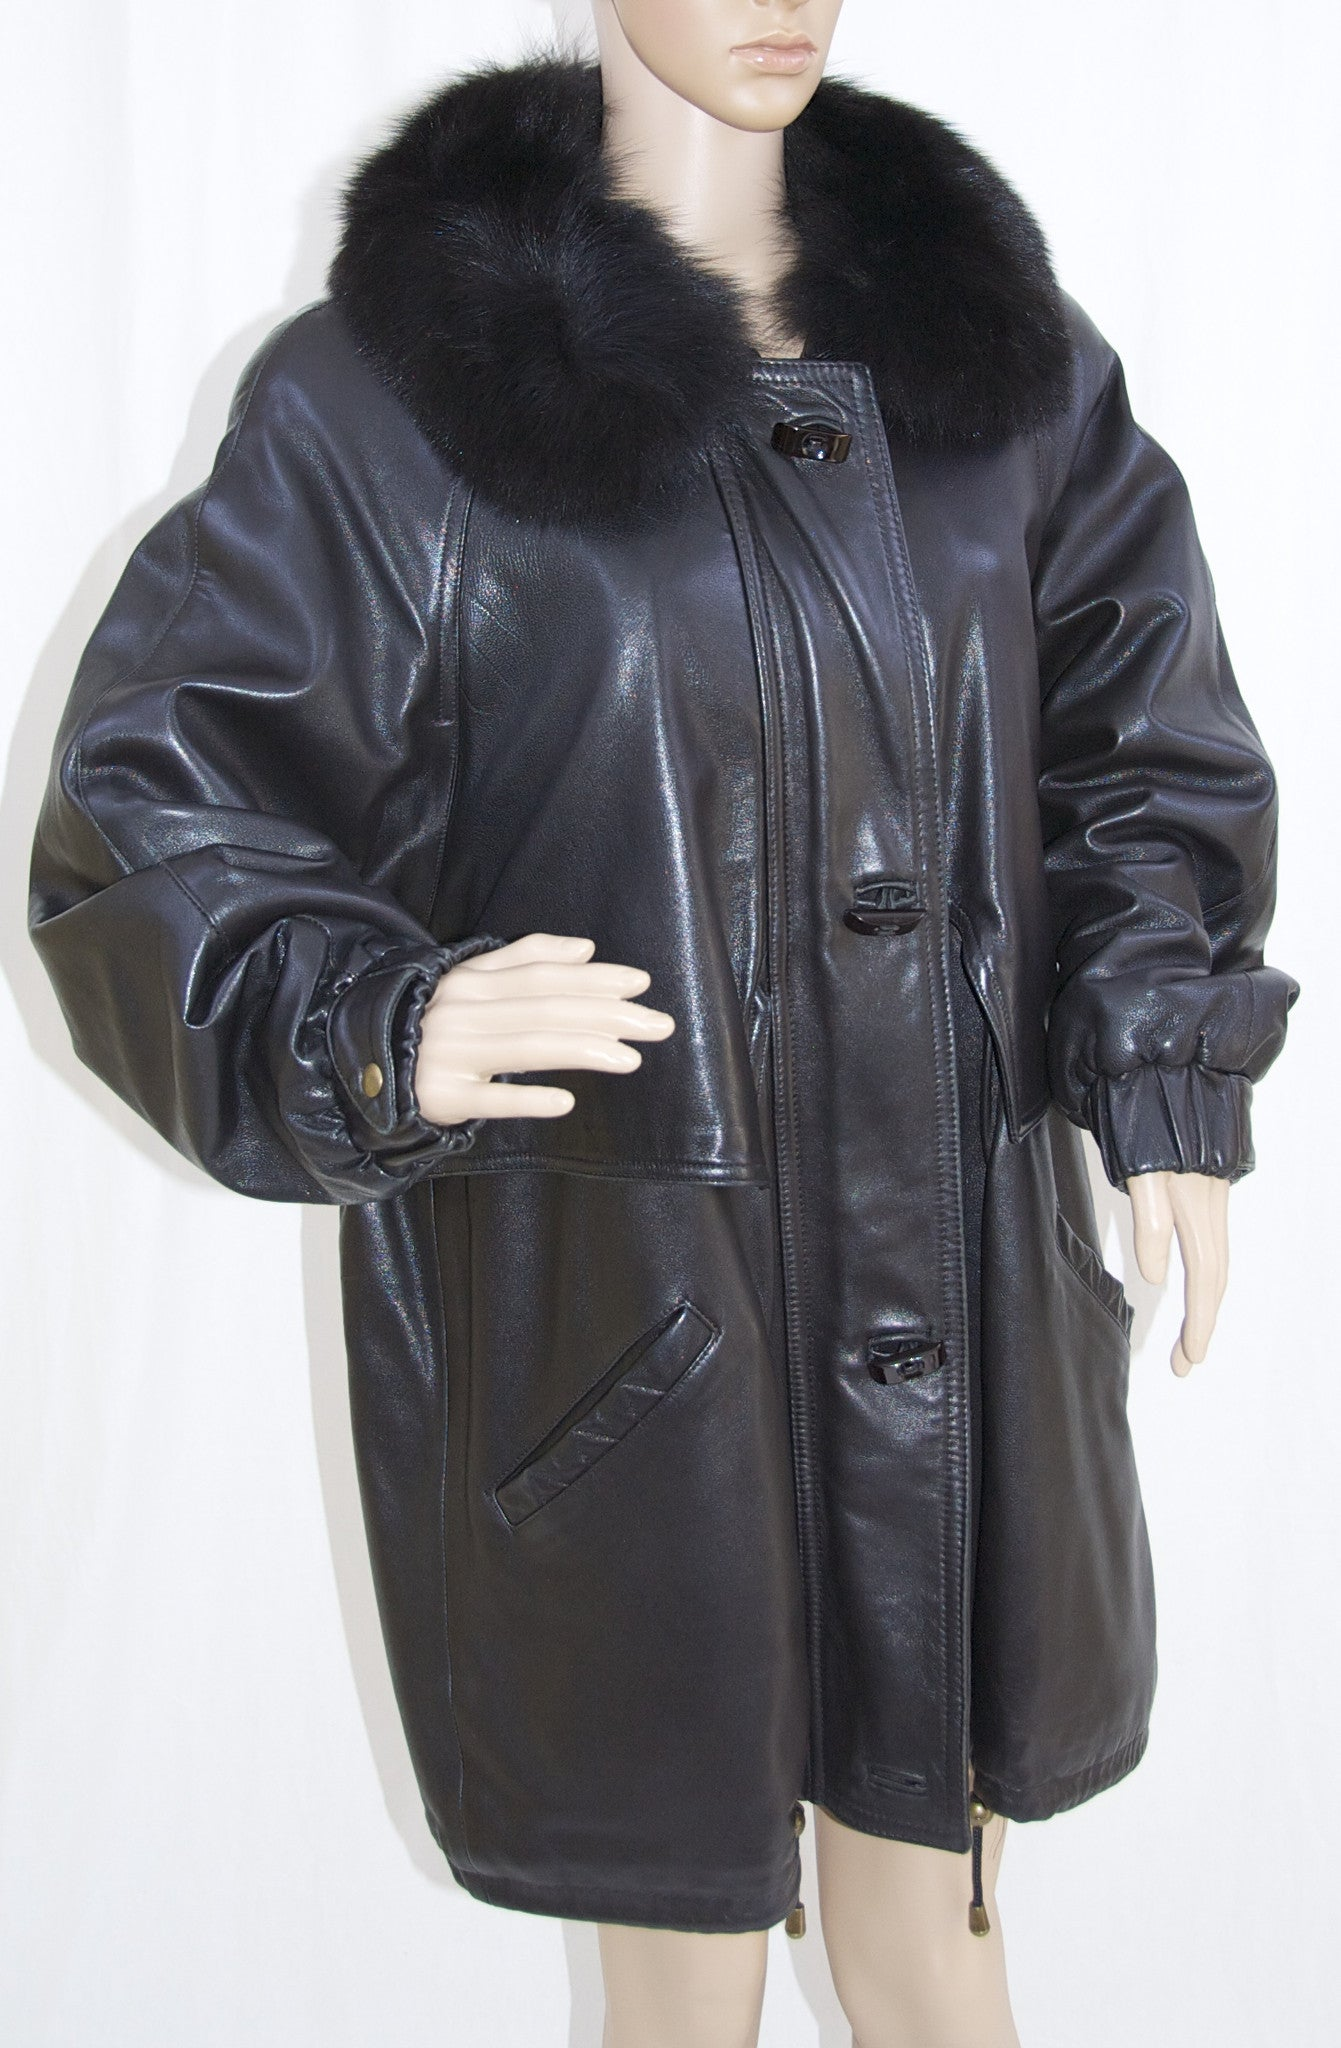 J. Percy for Marvin Richards Vintage Black Leather Coat with Fur ...